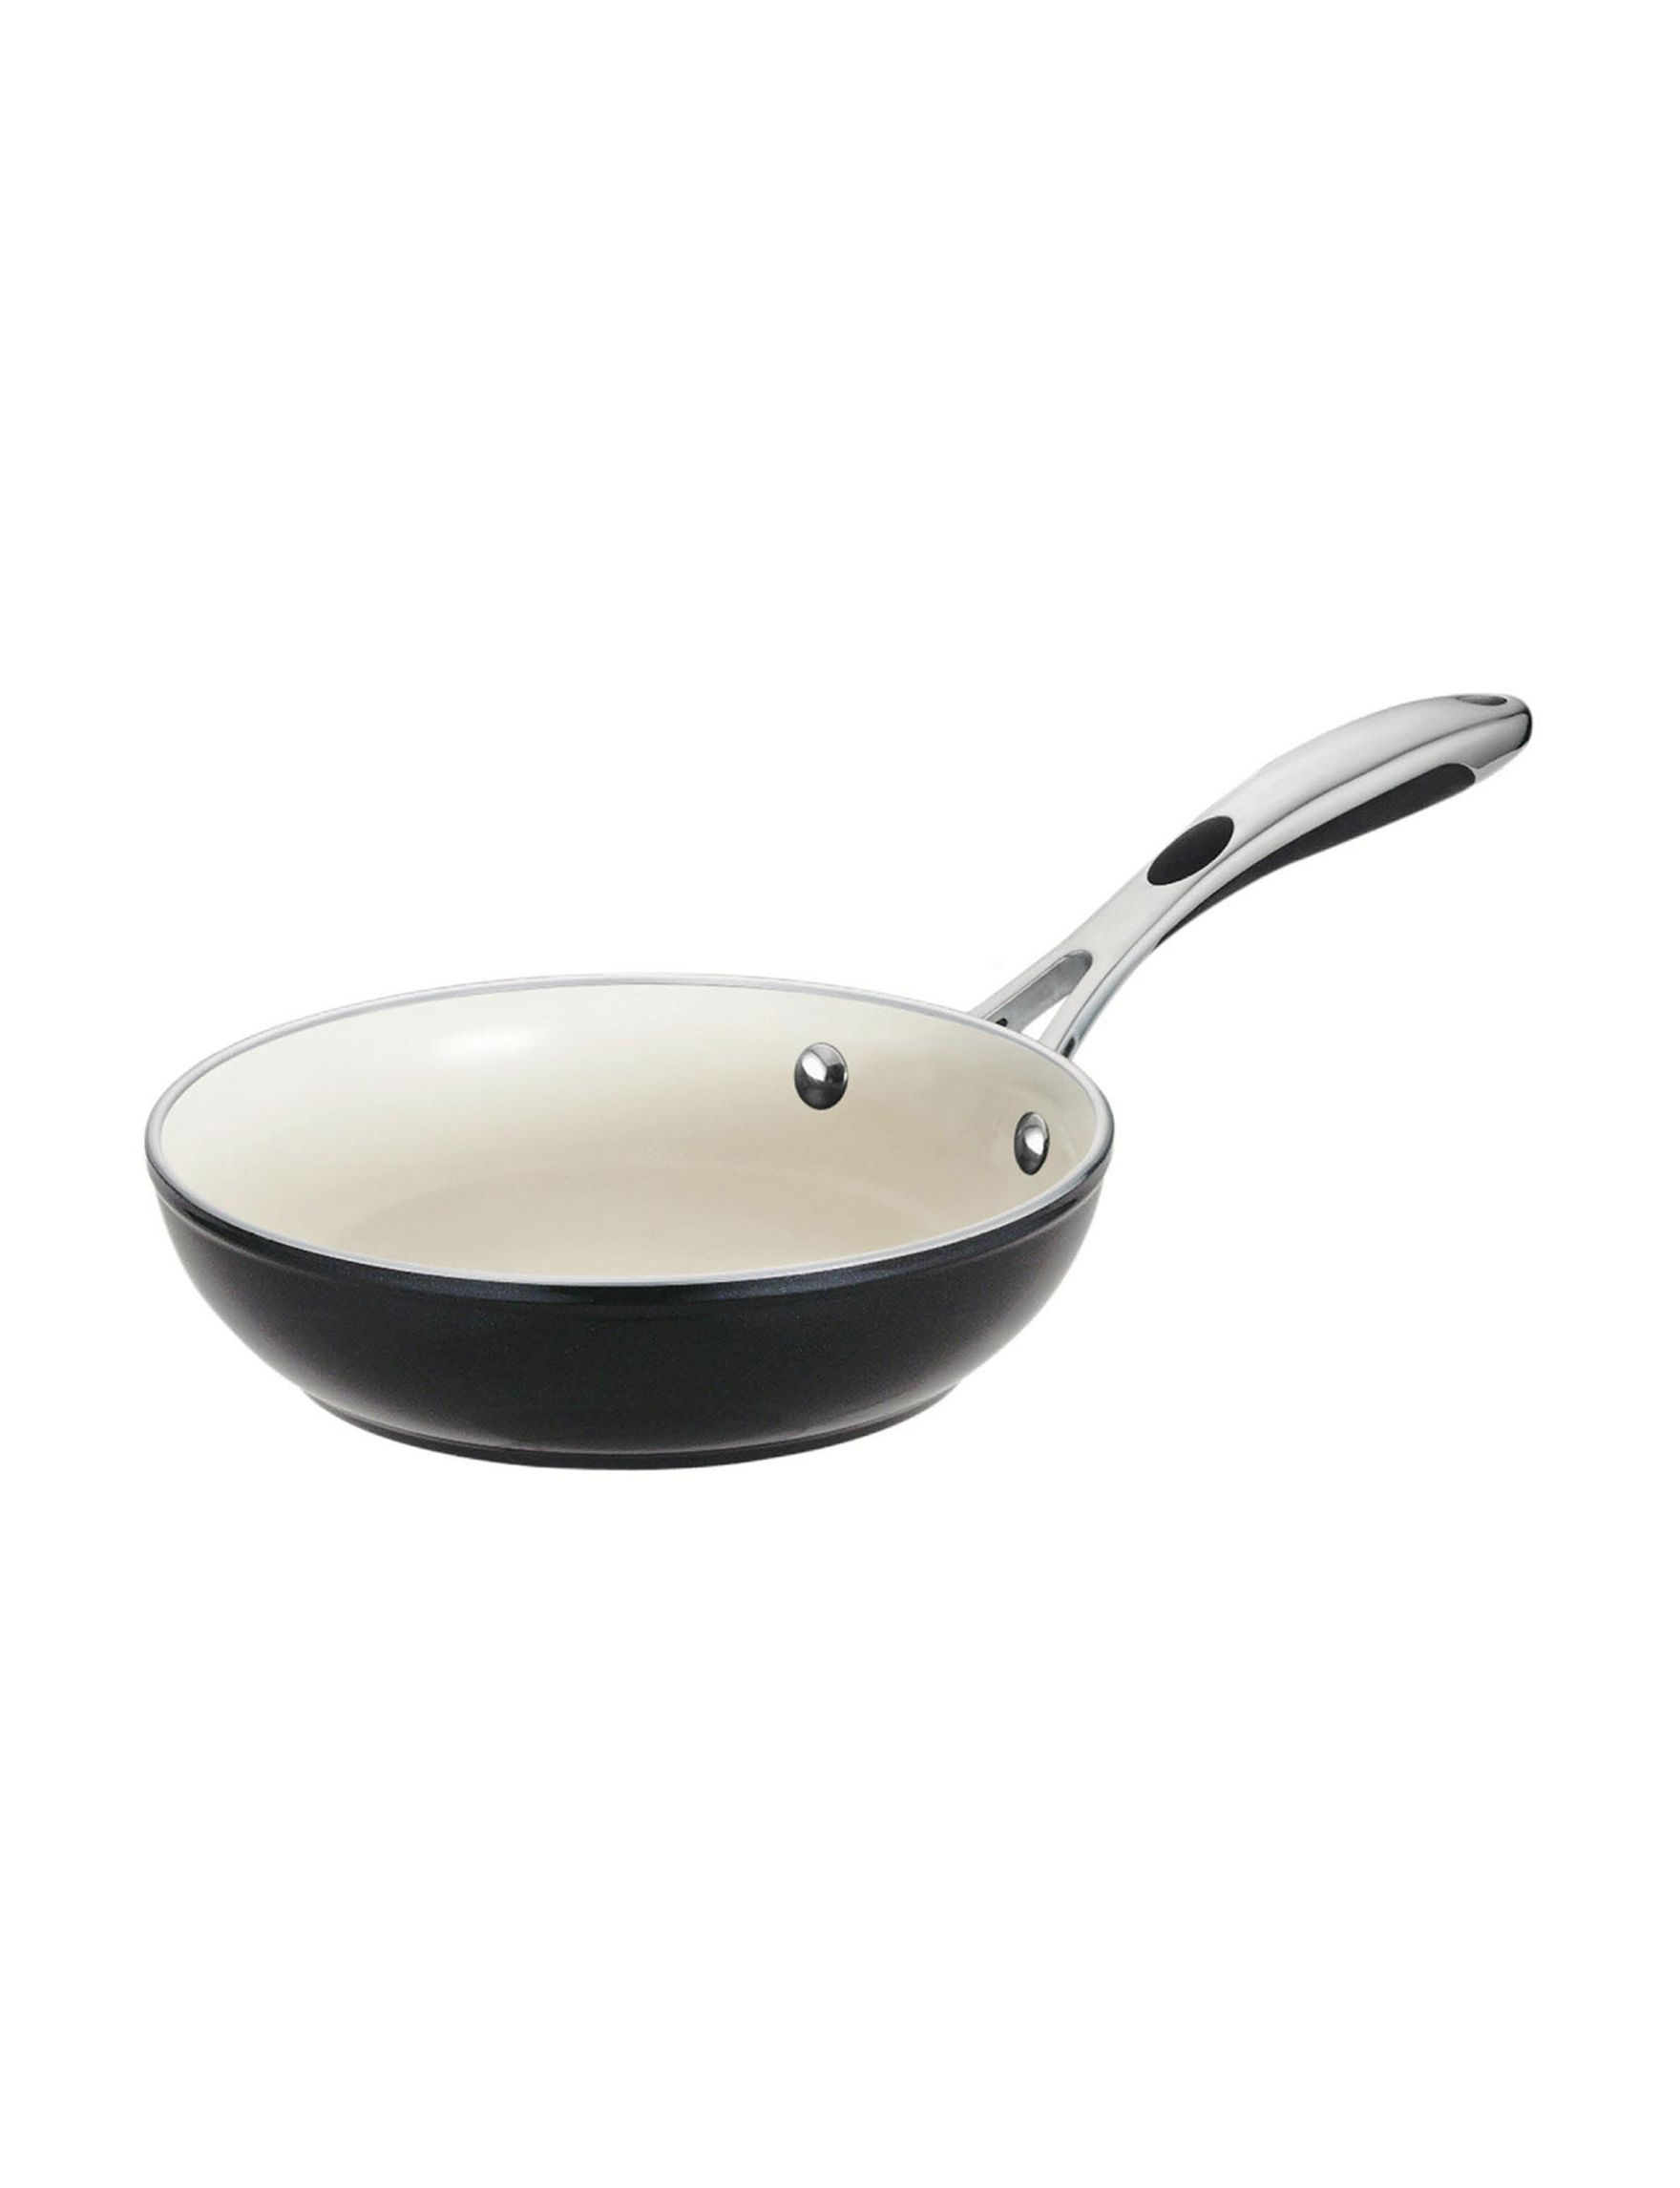 Tramontina Black Frying Pans & Skillets Cookware